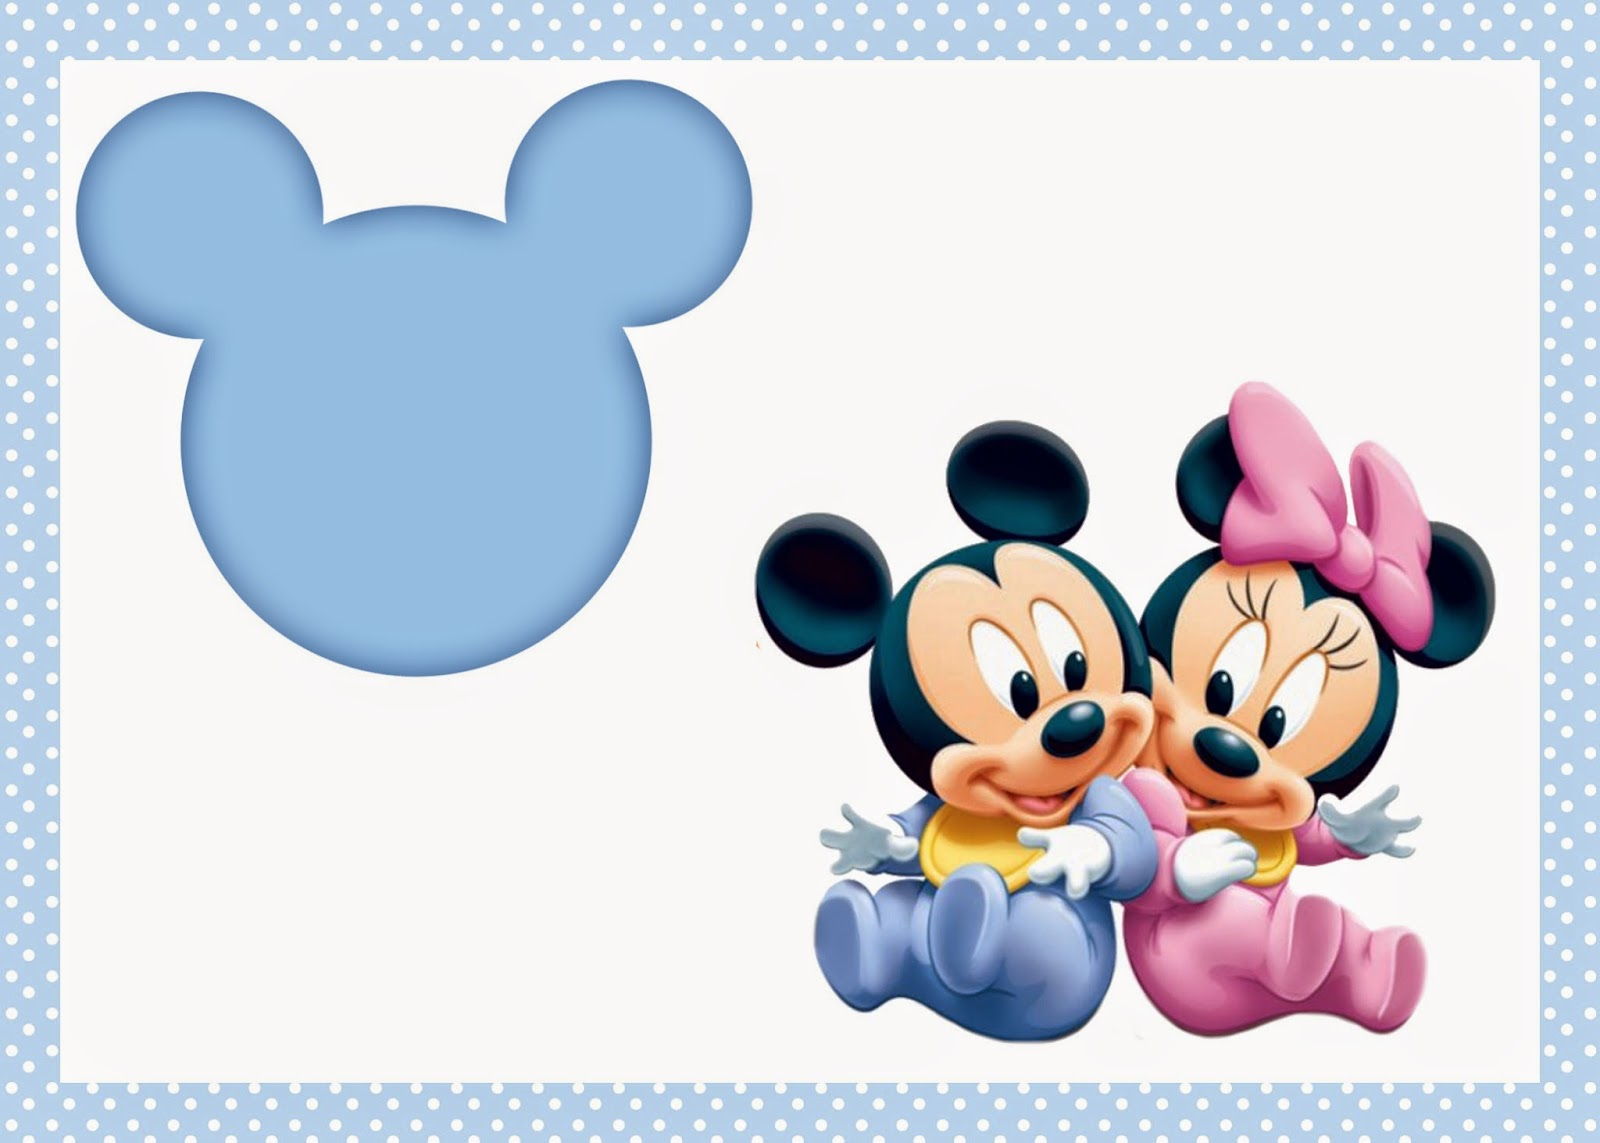 Mickey Mouse Invitation Free Download Jpg Download Invitation Free